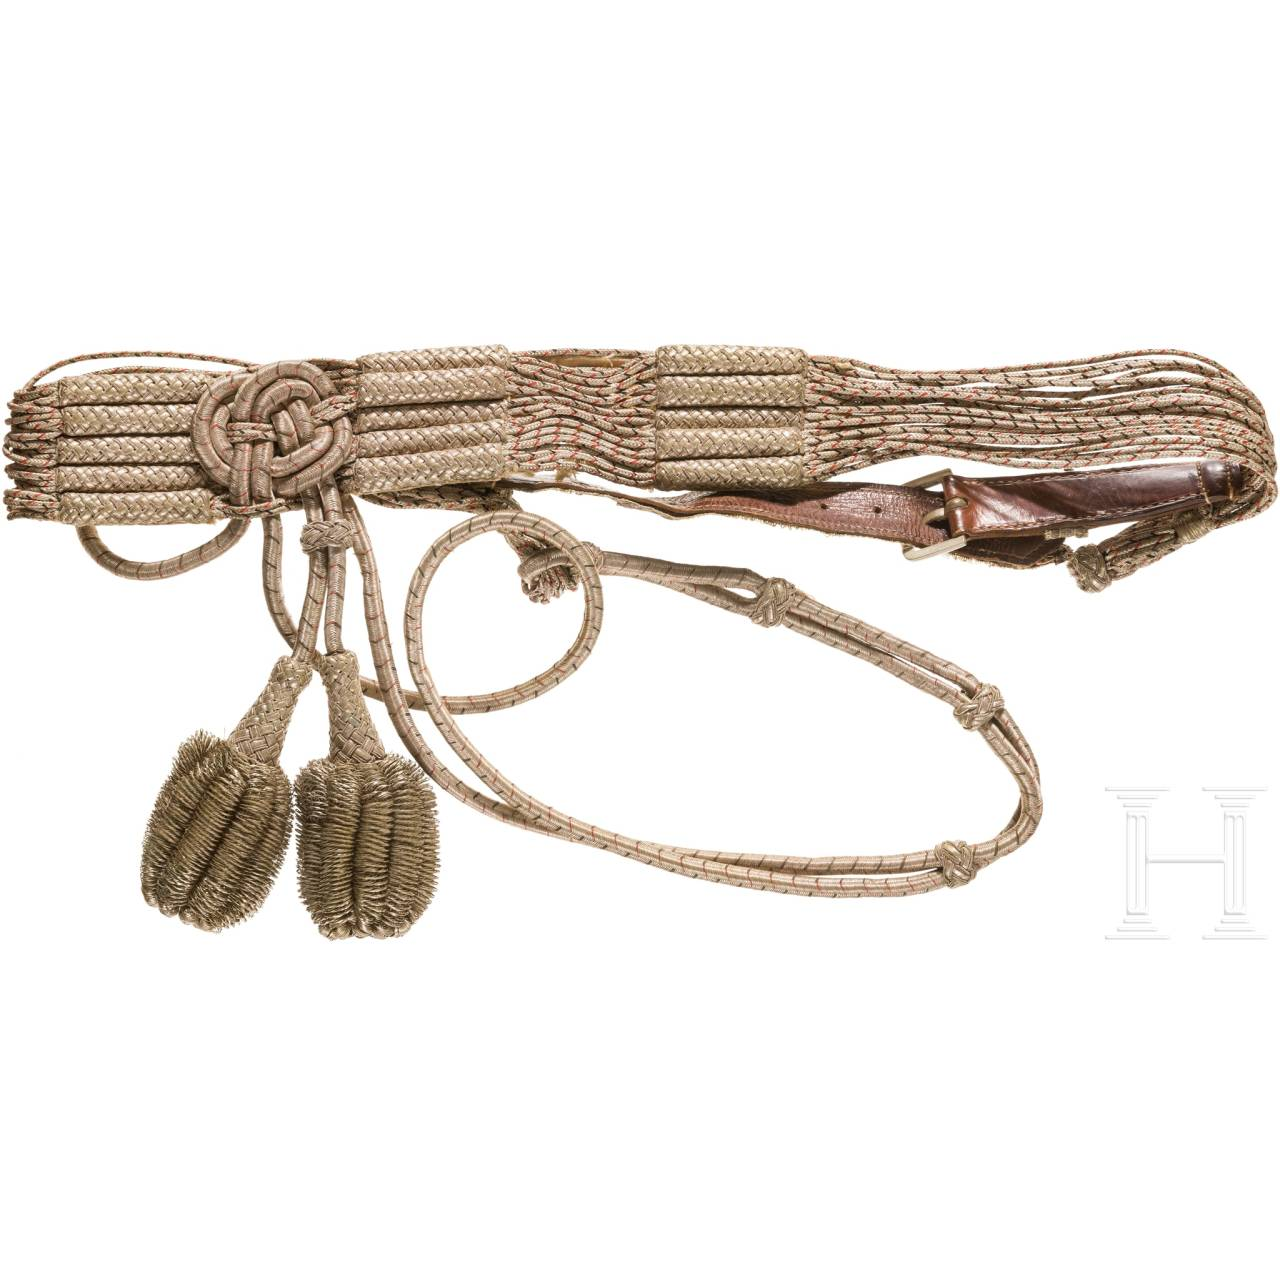 A sash for naval officers/admirals